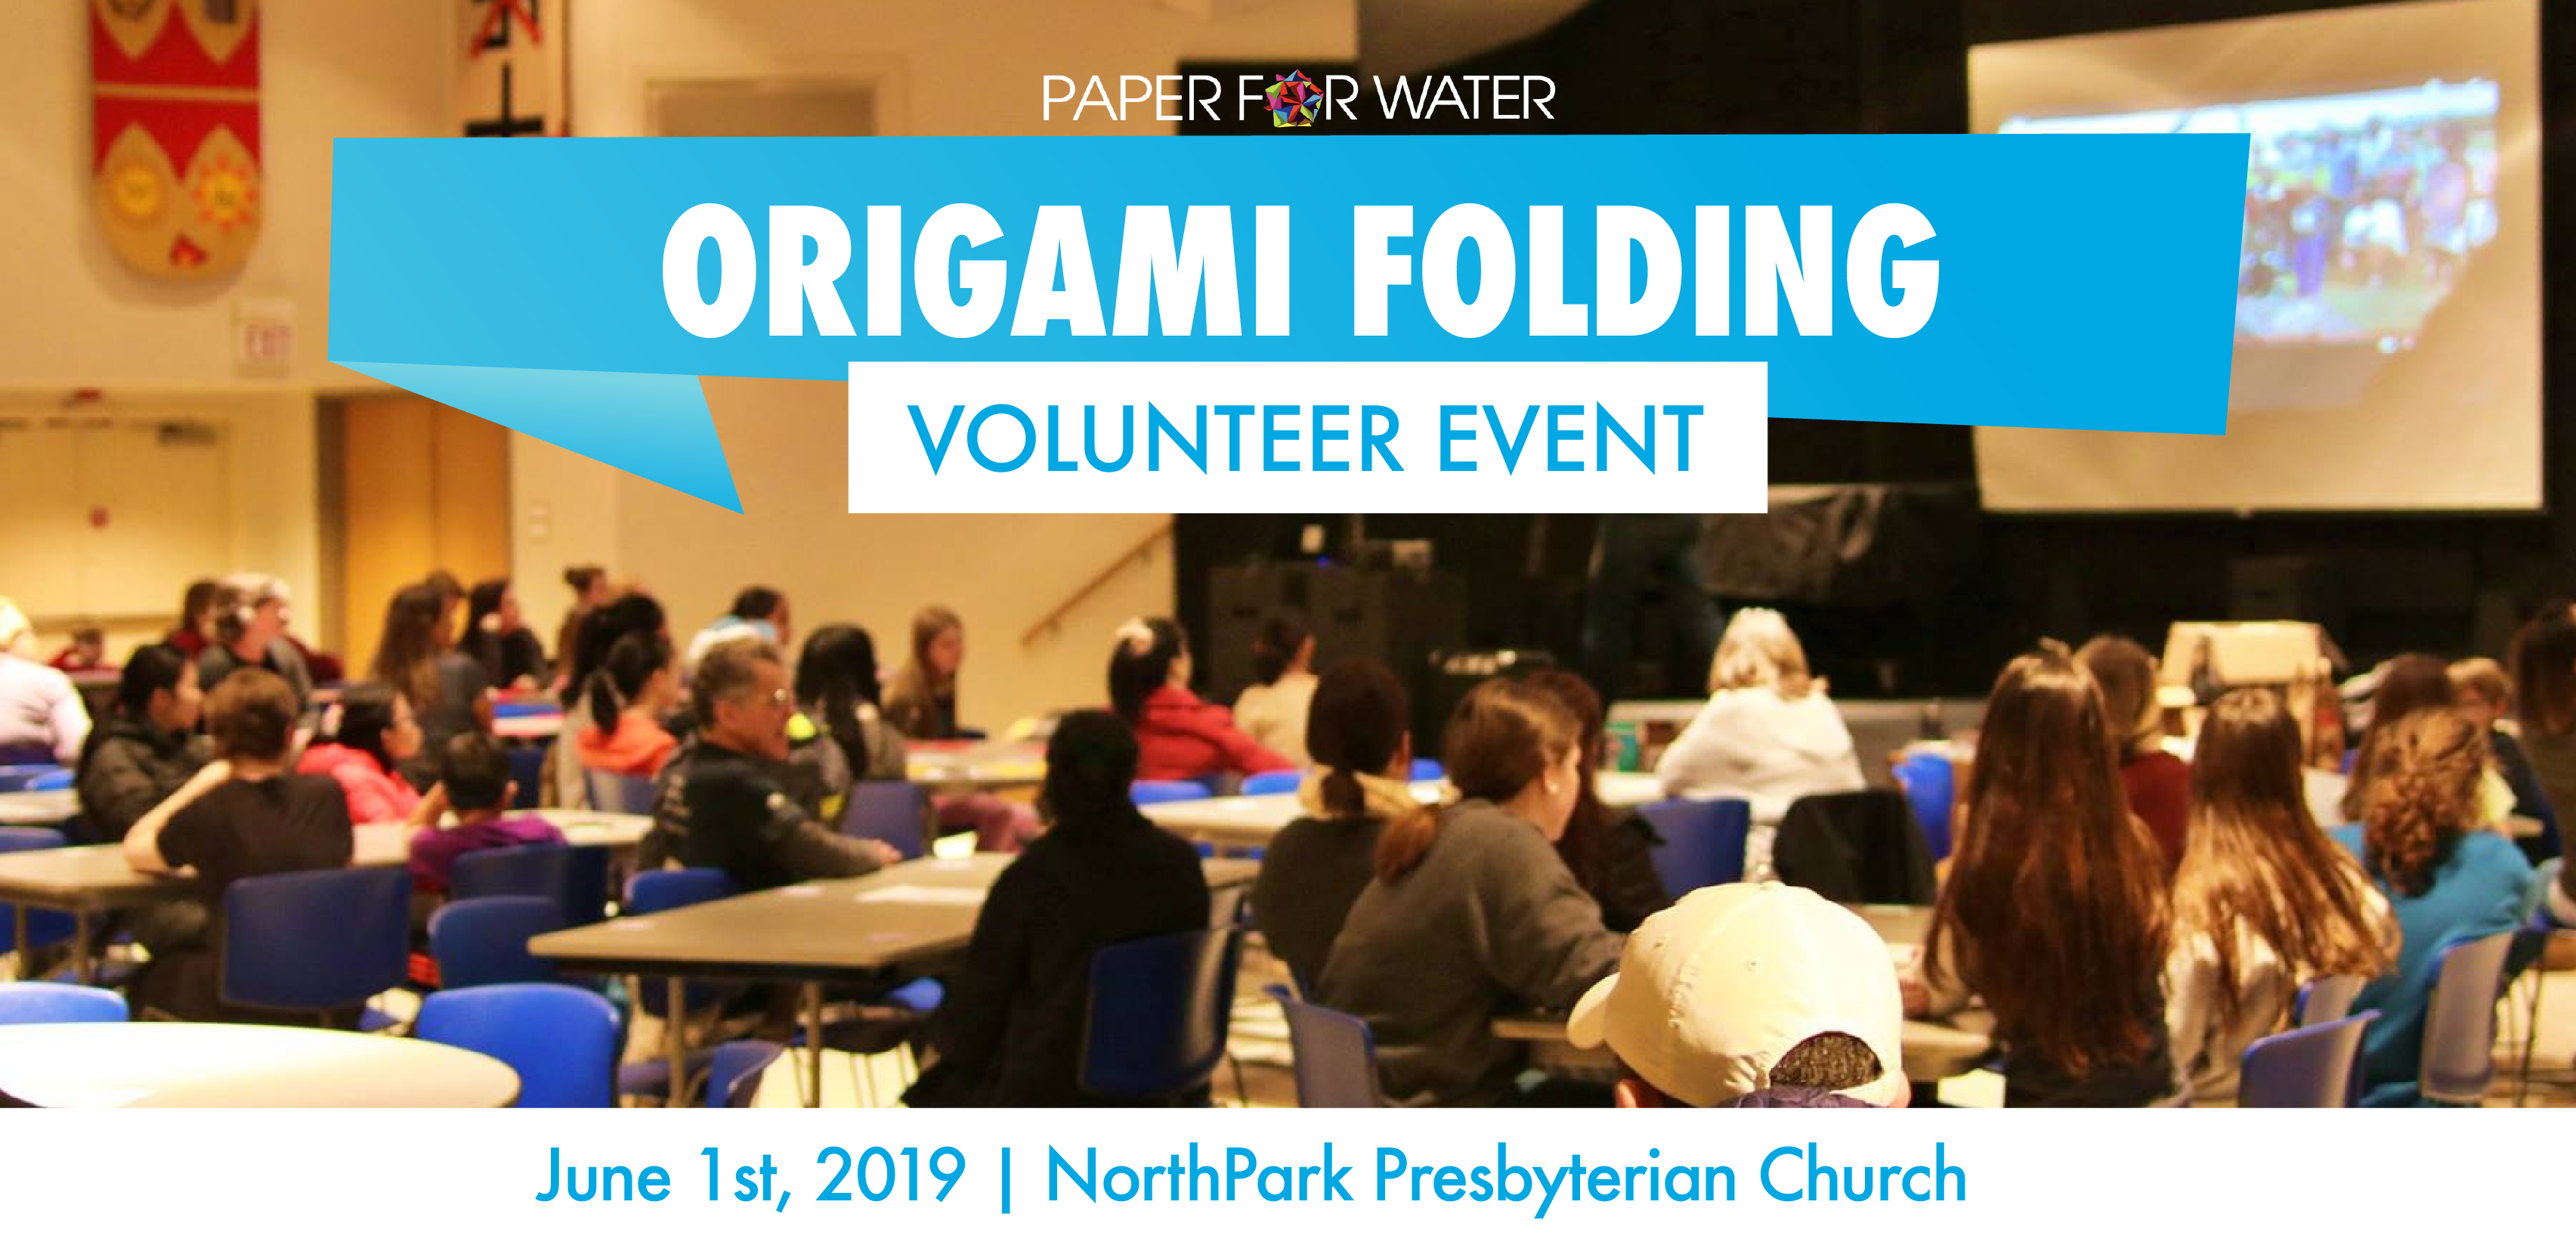 Origami folding volunteer event 06